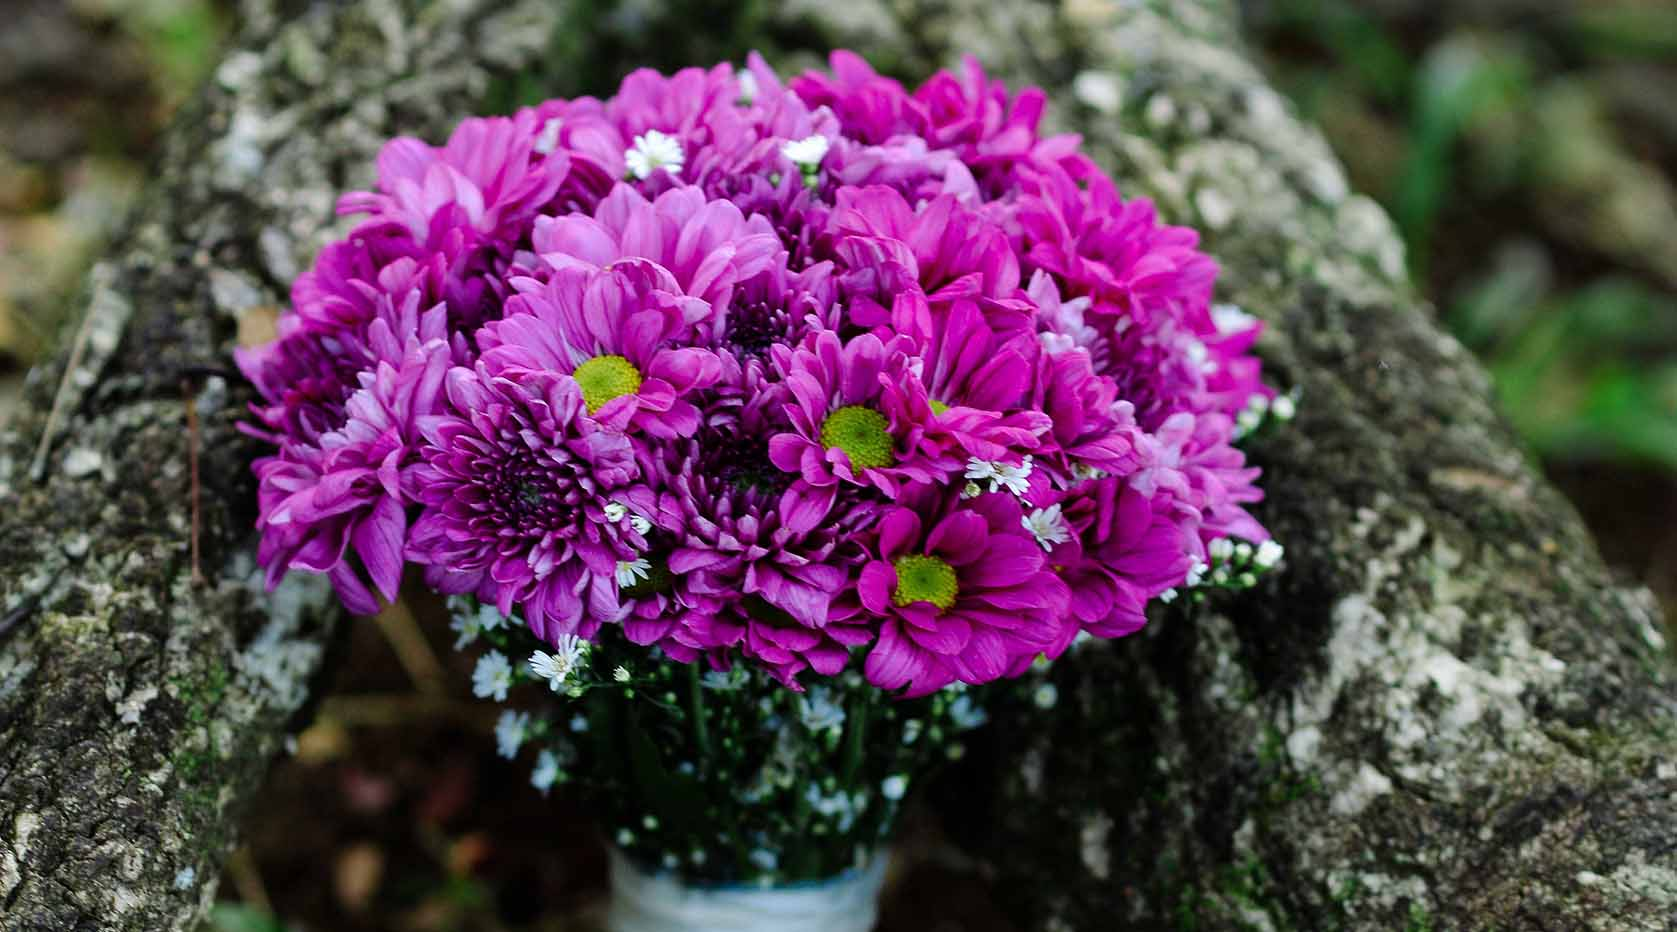 Purple daisy bouquet.